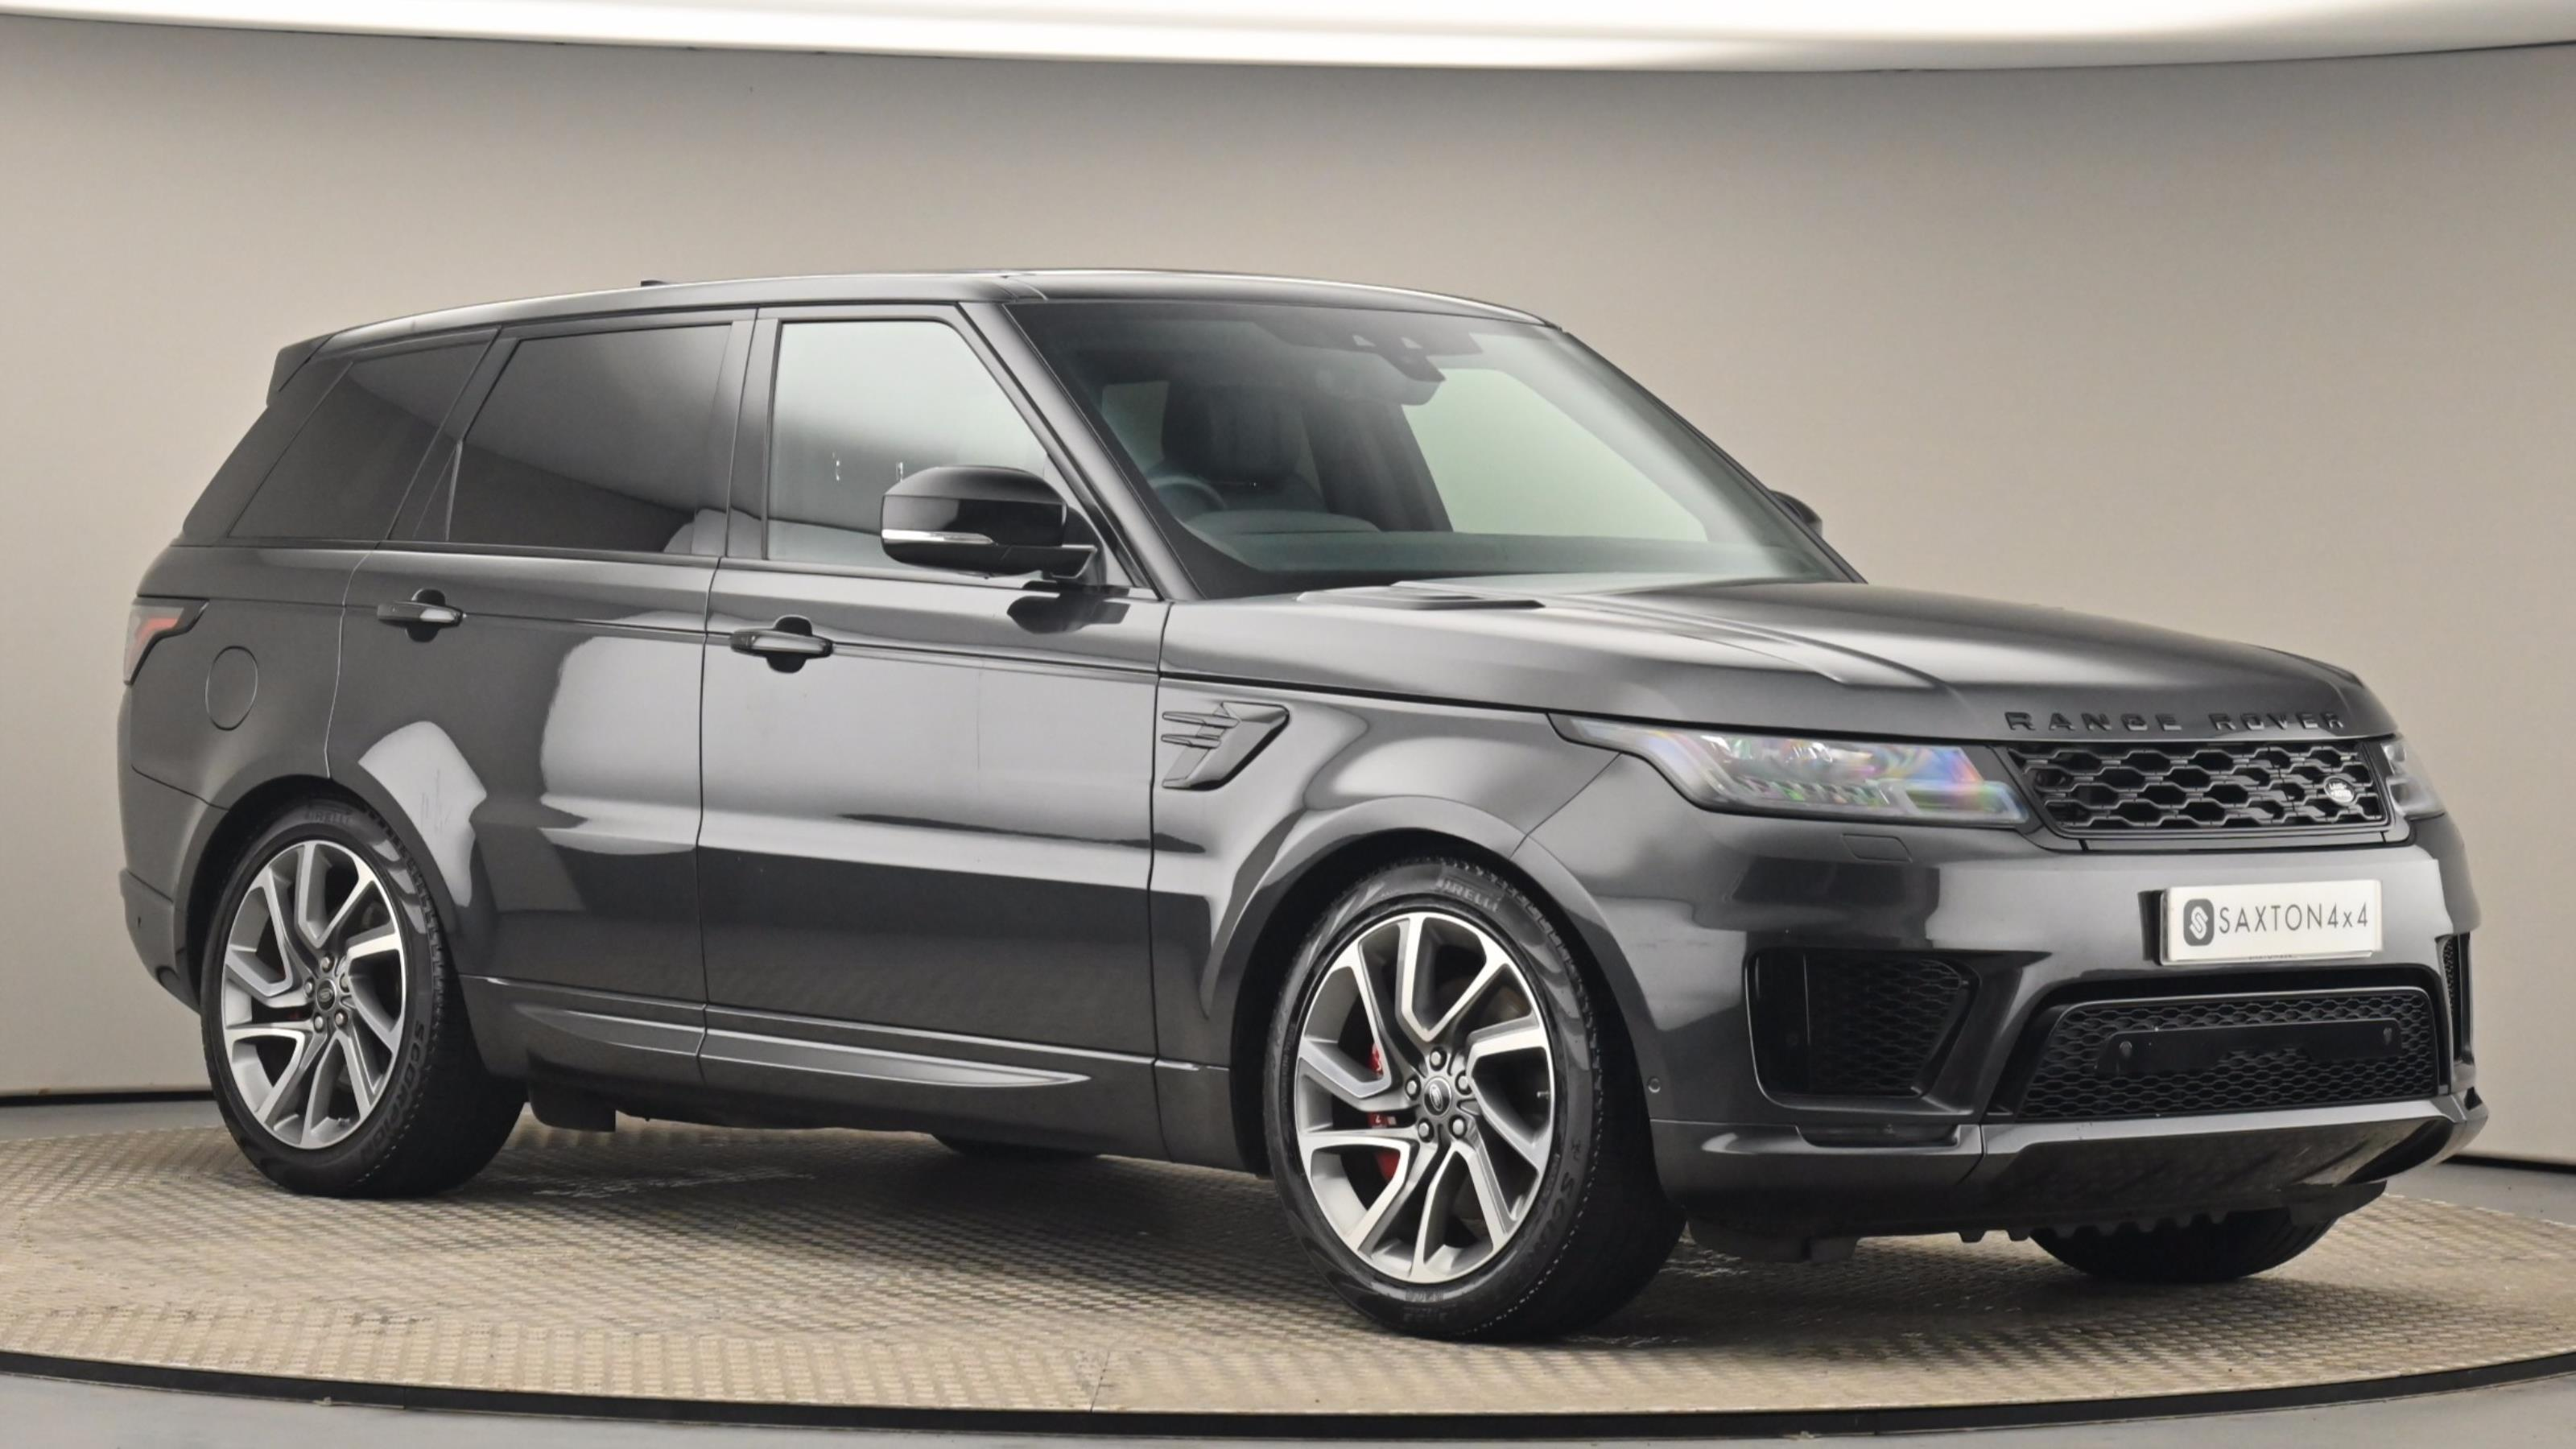 Used 2018 Land Rover RANGE ROVER SPORT 2.0 P400e Autobiography Dynamic 5dr Auto GREY at Saxton4x4